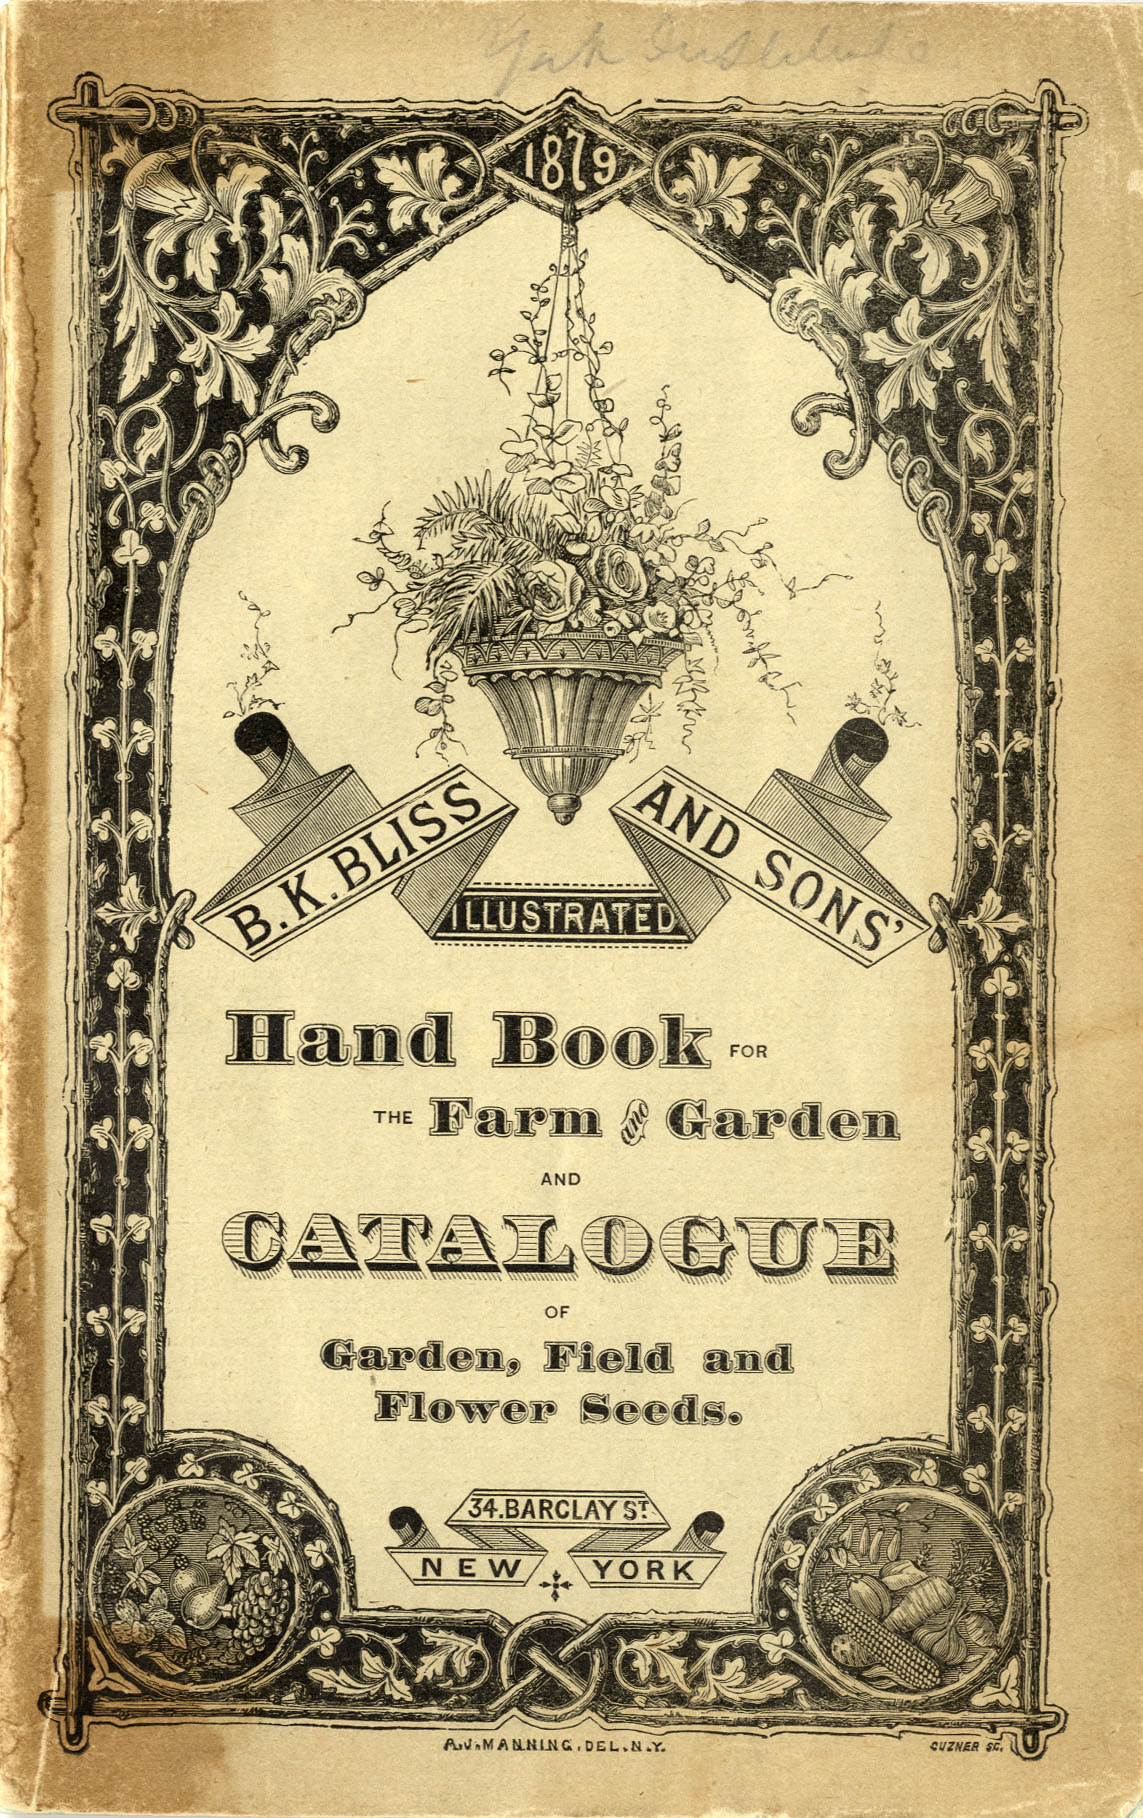 B. K. Bliss catalog cover of 1879